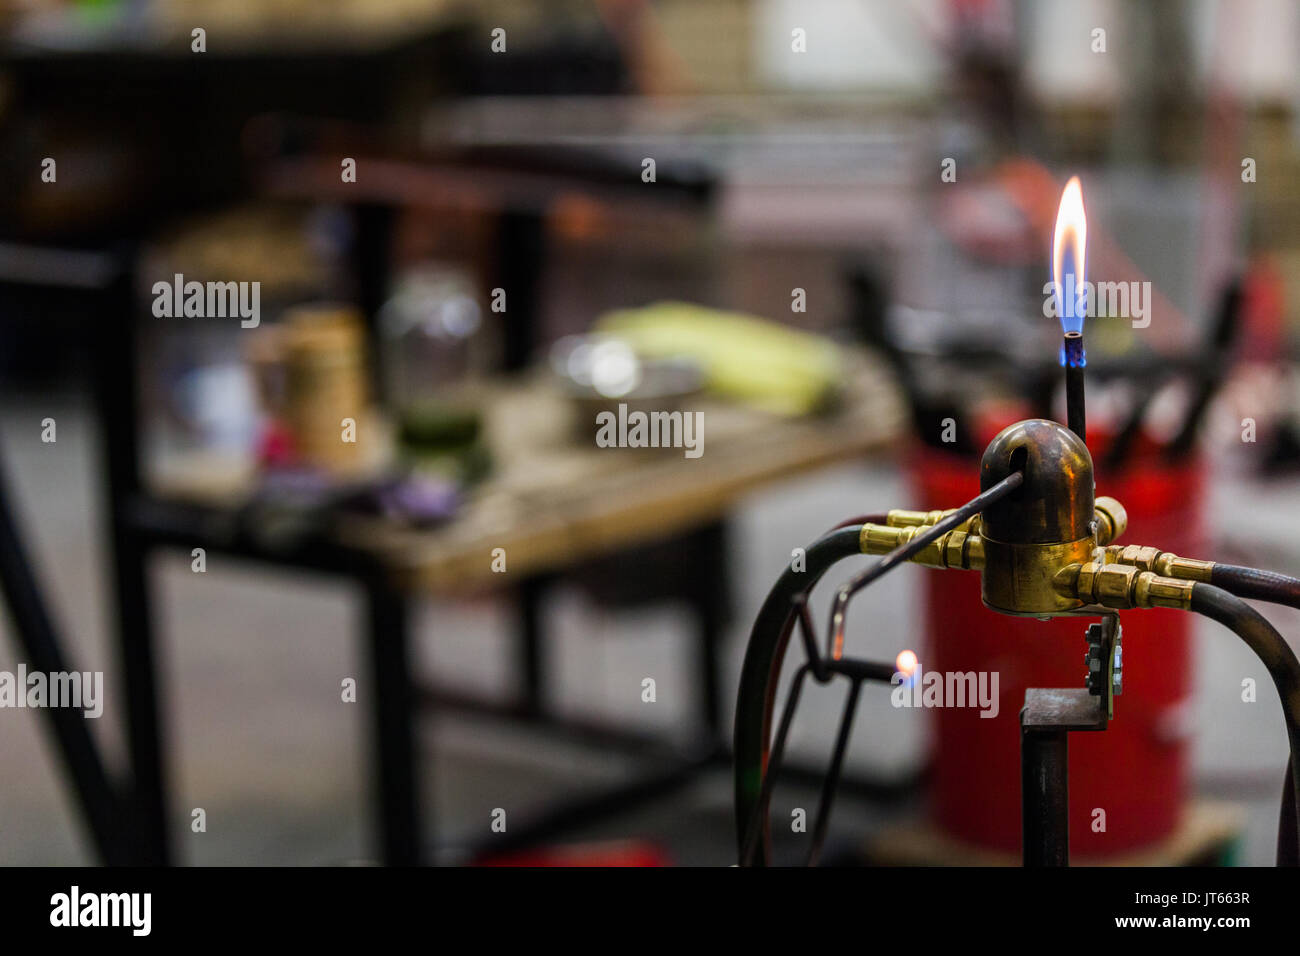 Propane Torch Stock Photos & Propane Torch Stock Images - Alamy